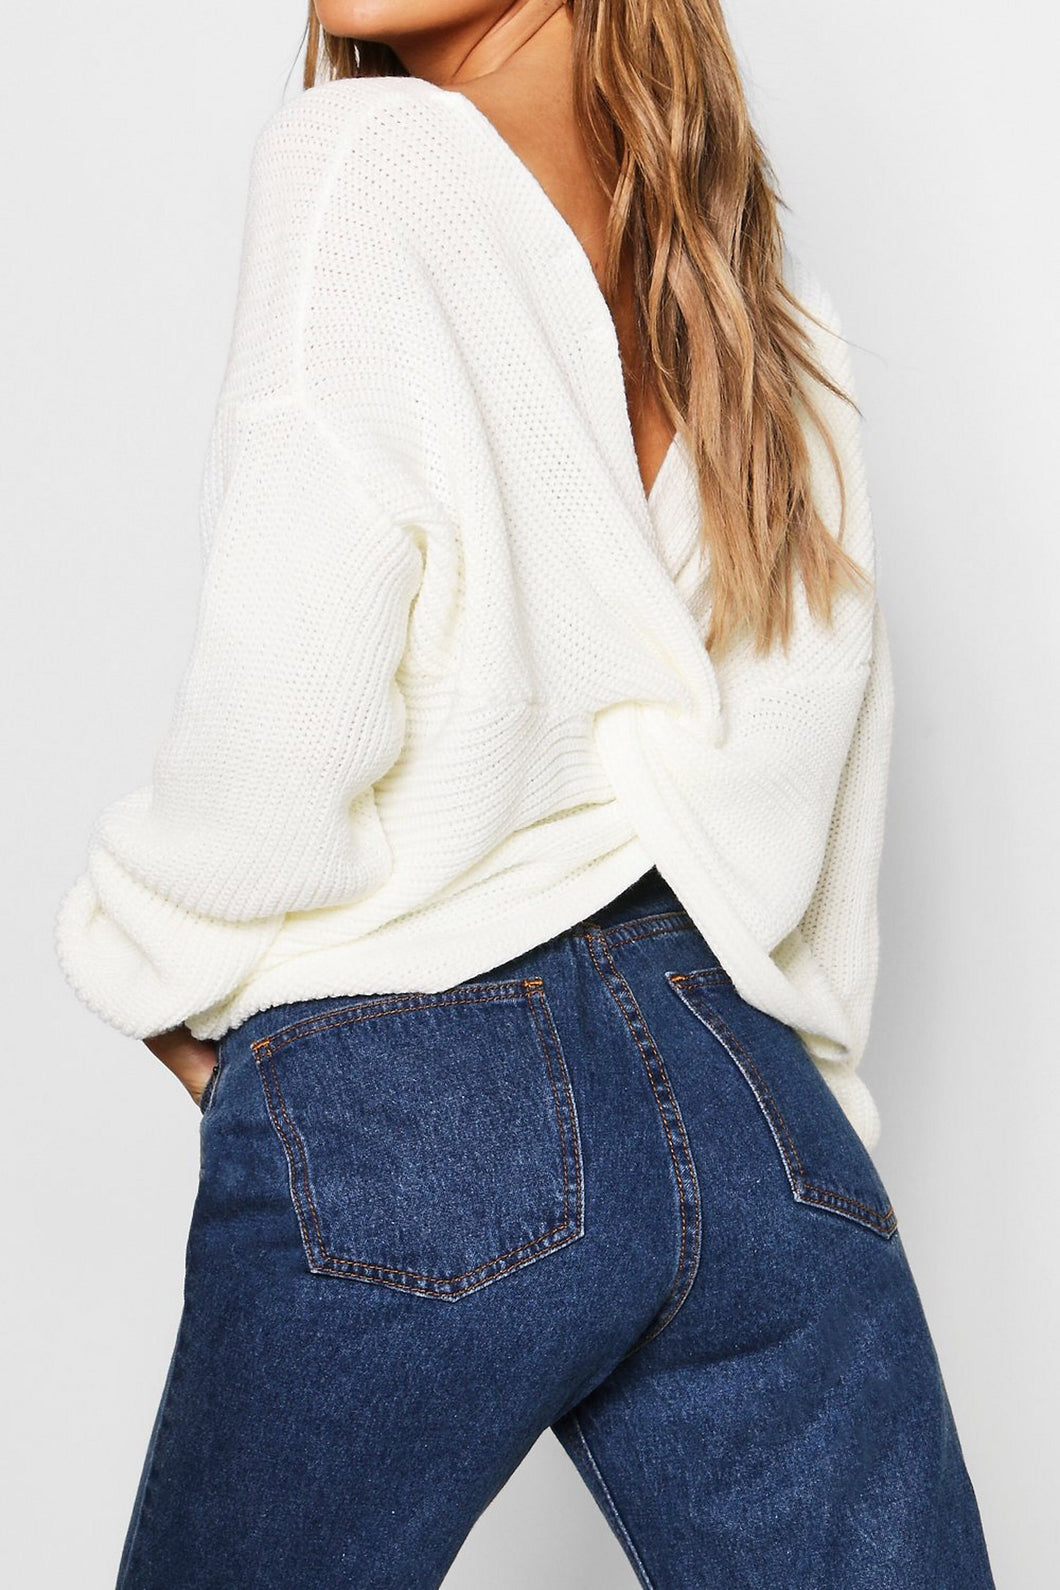 Twist Me Up Sweater in Ivory